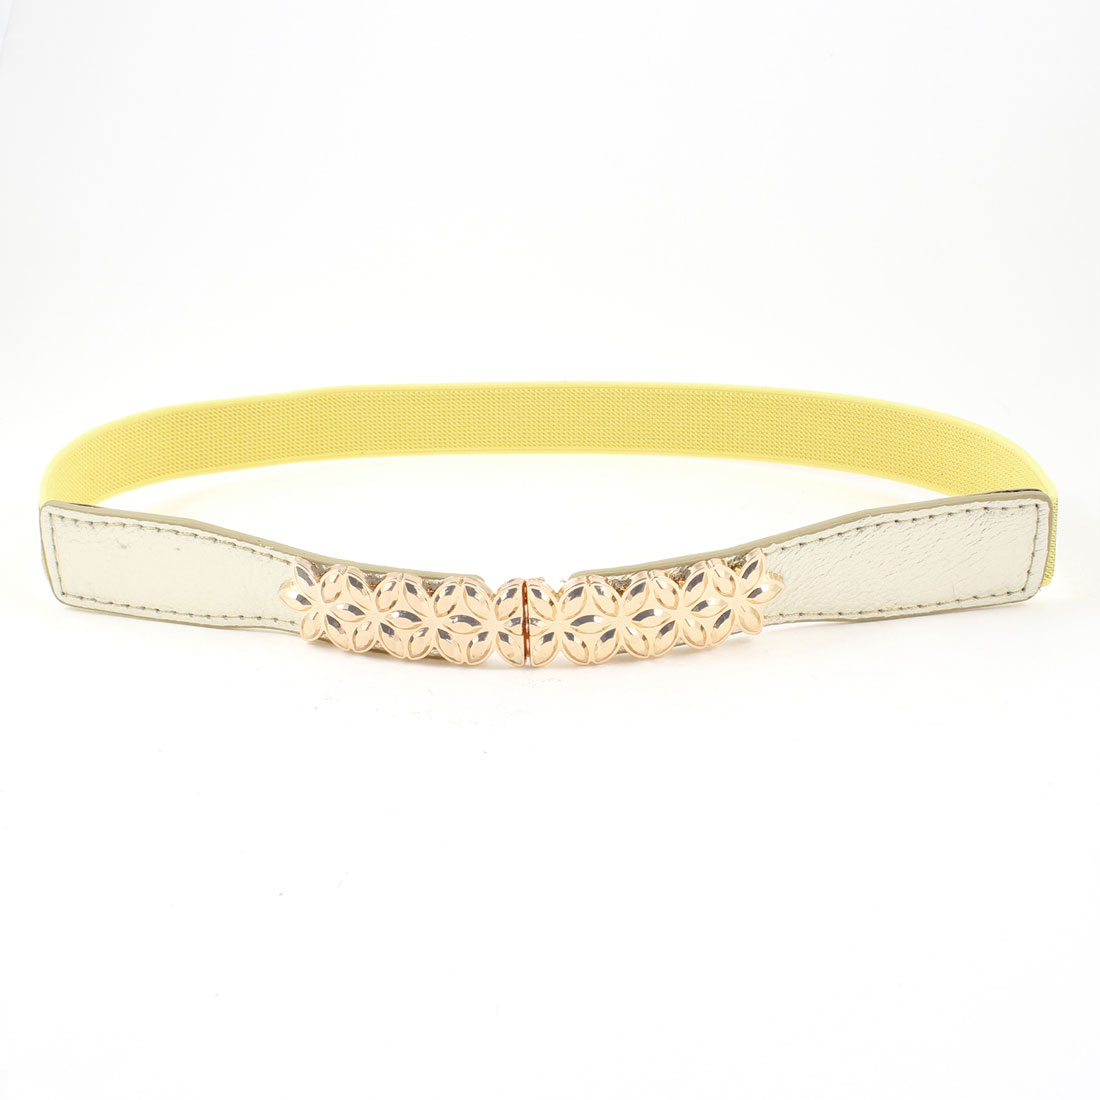 Gold Tone Metal Flower Decorated Elastic Skinny Waist Band Belt for Ladies